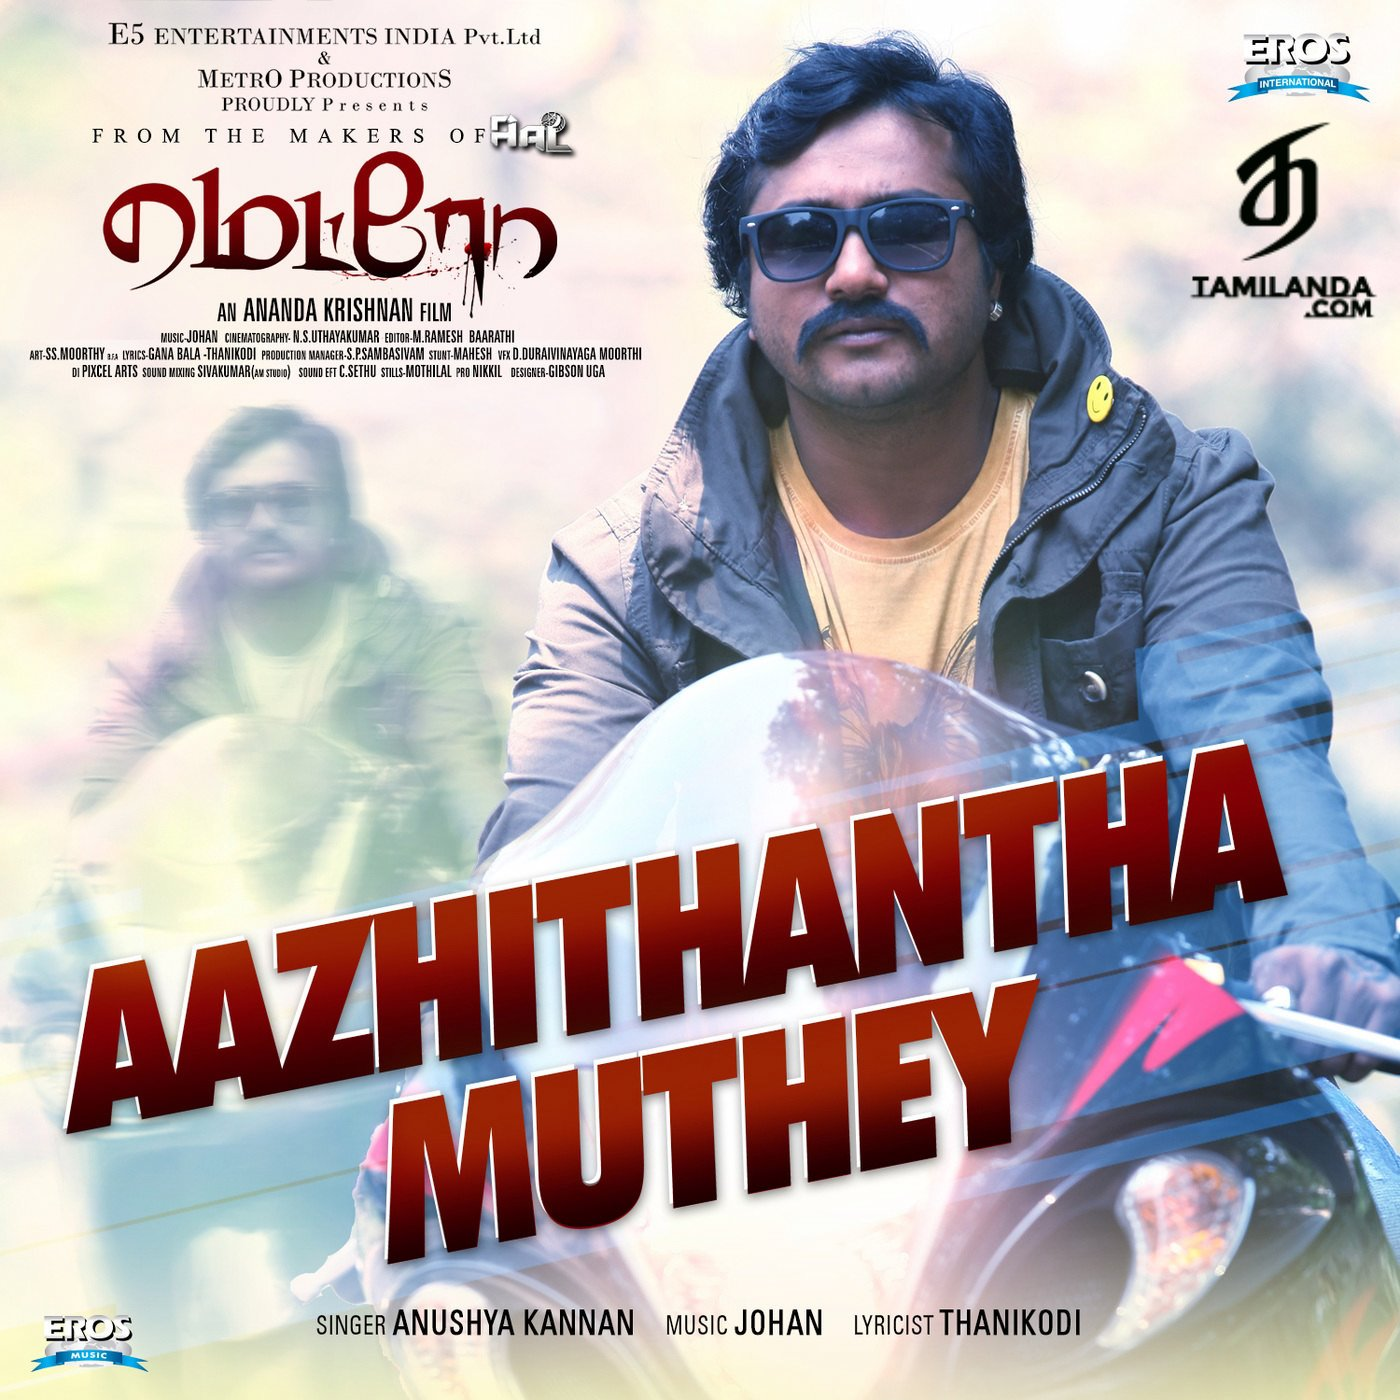 Aazhithantha Muthey (From Metro) – Single FLAC Song